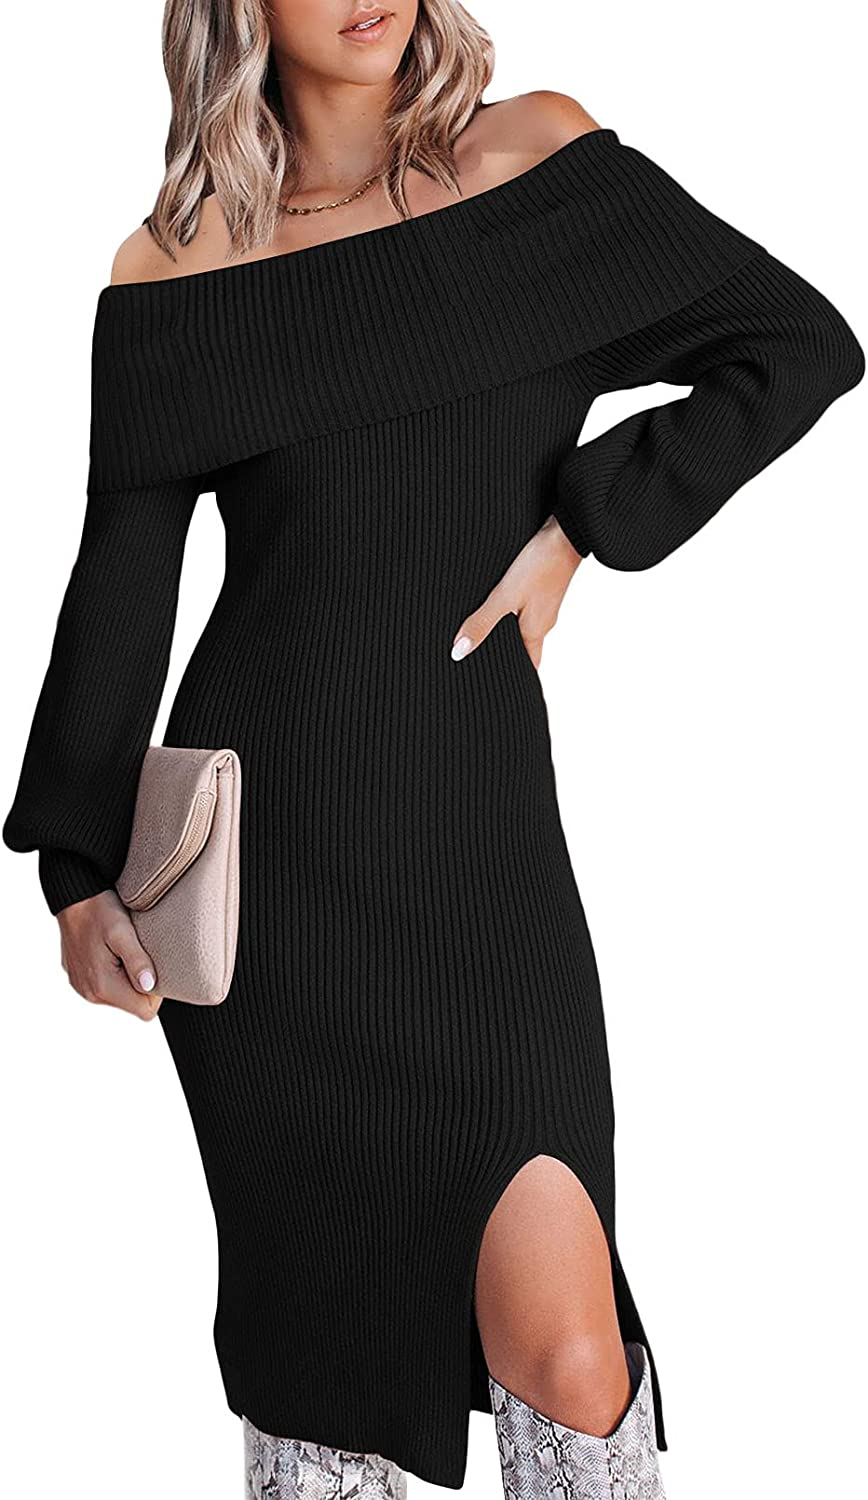 Meenew Women's Off Shoulder Sweater Dress Slim Fitted Midi Party Dress with Slit